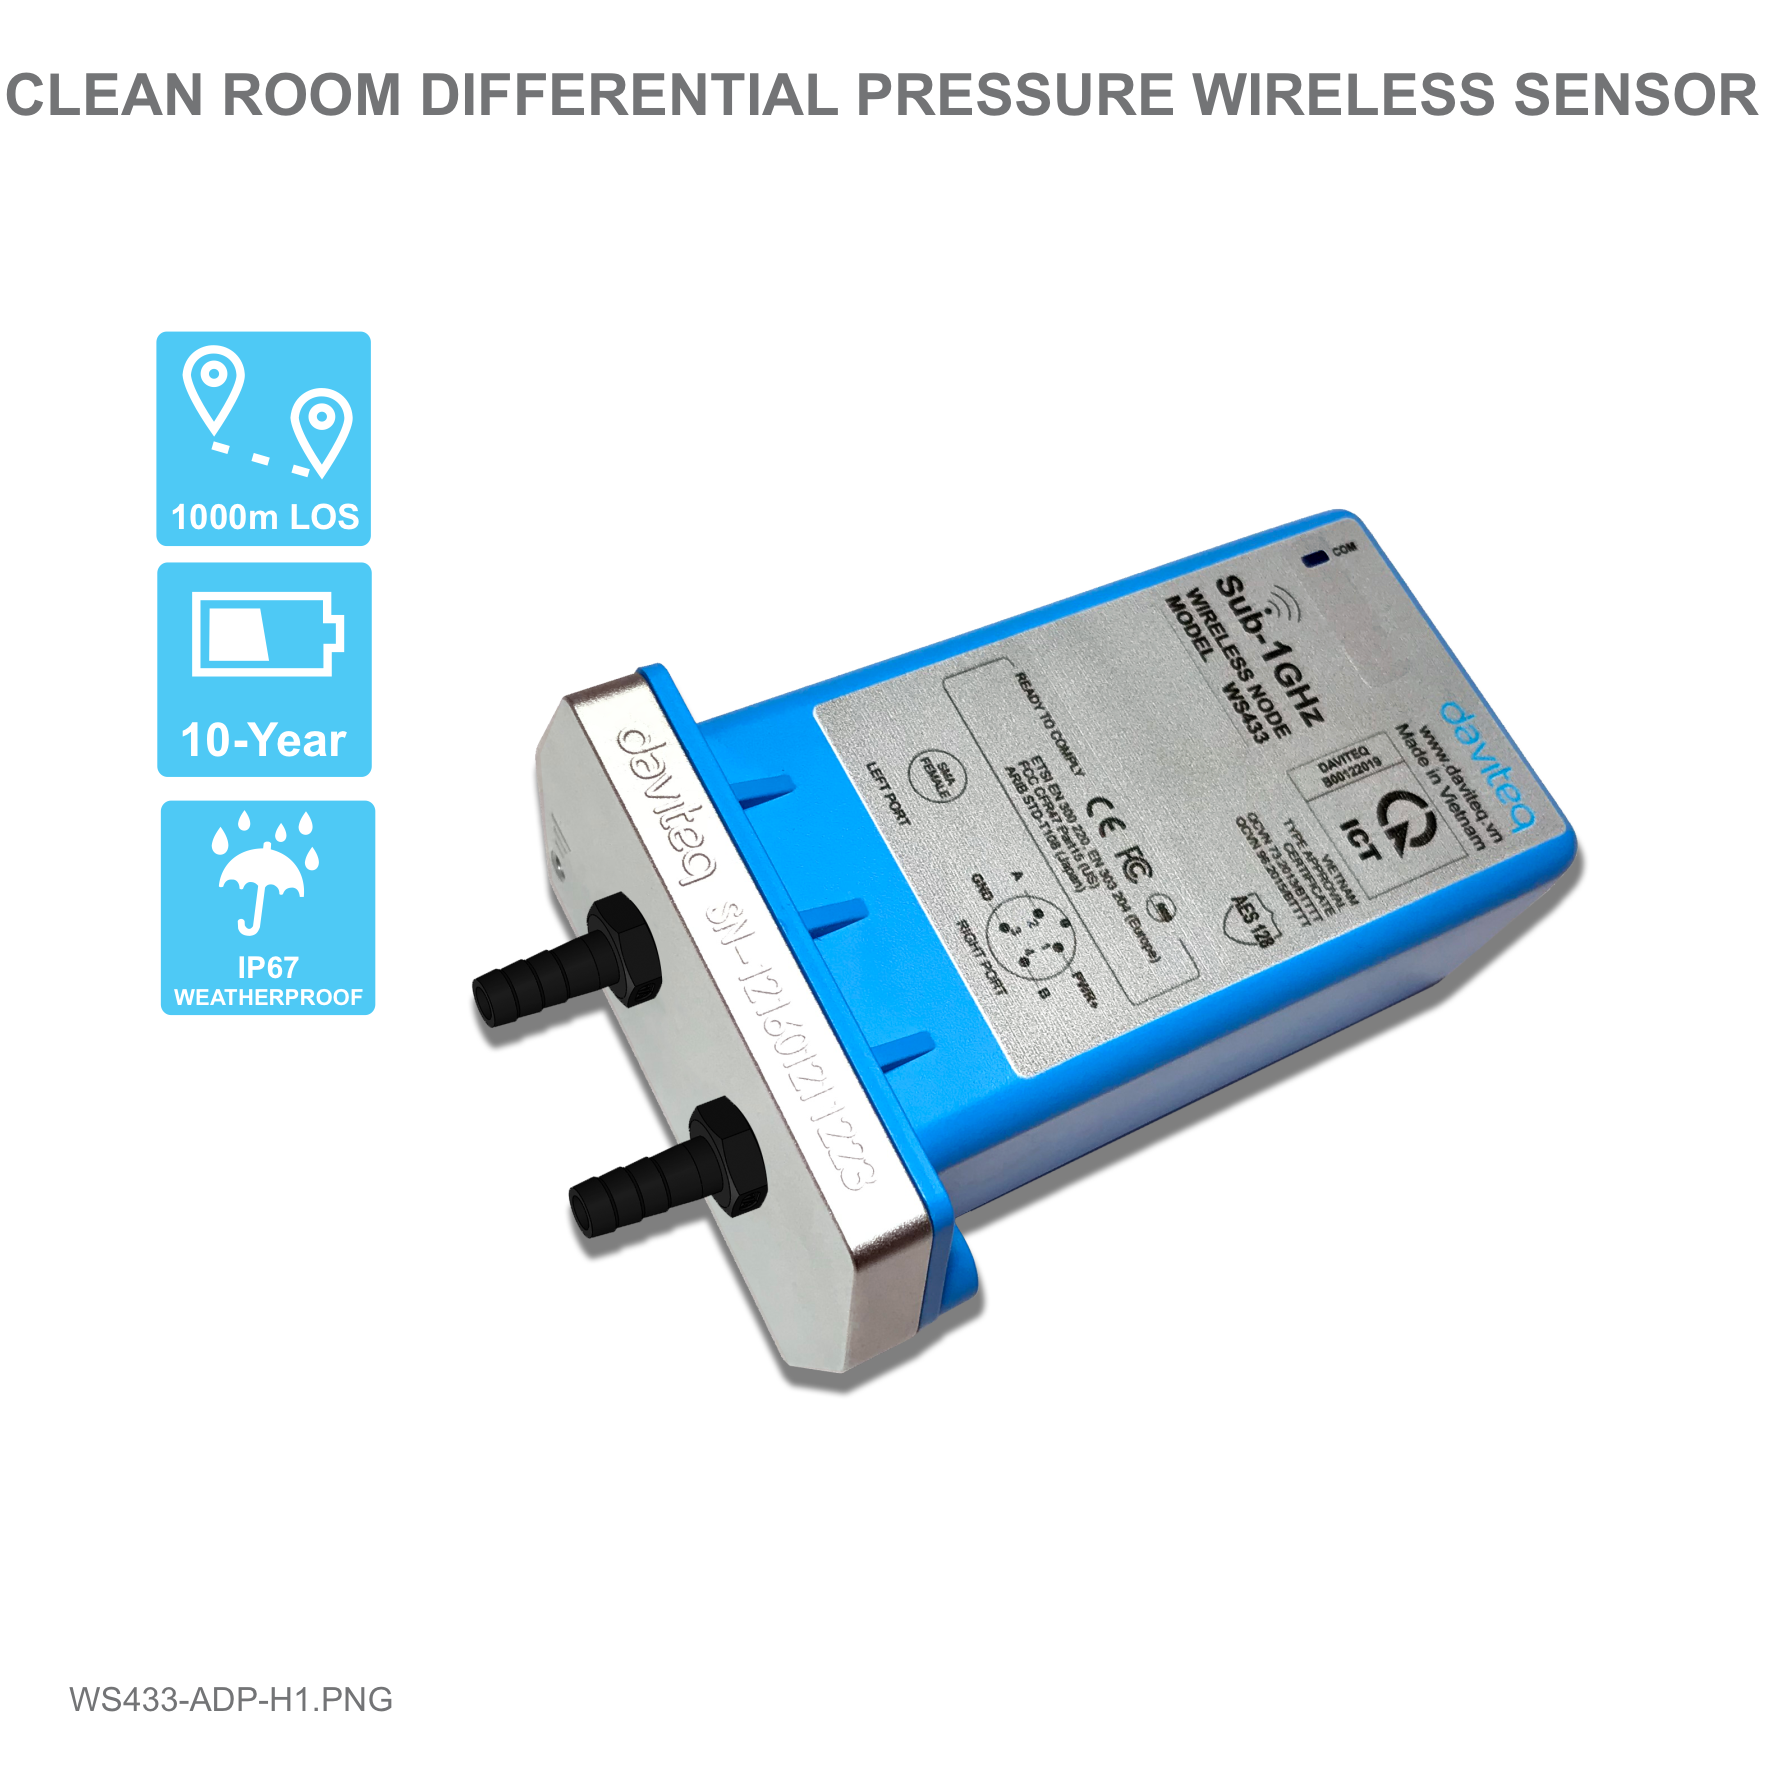 Wireless Room Differential Pressure Sensor